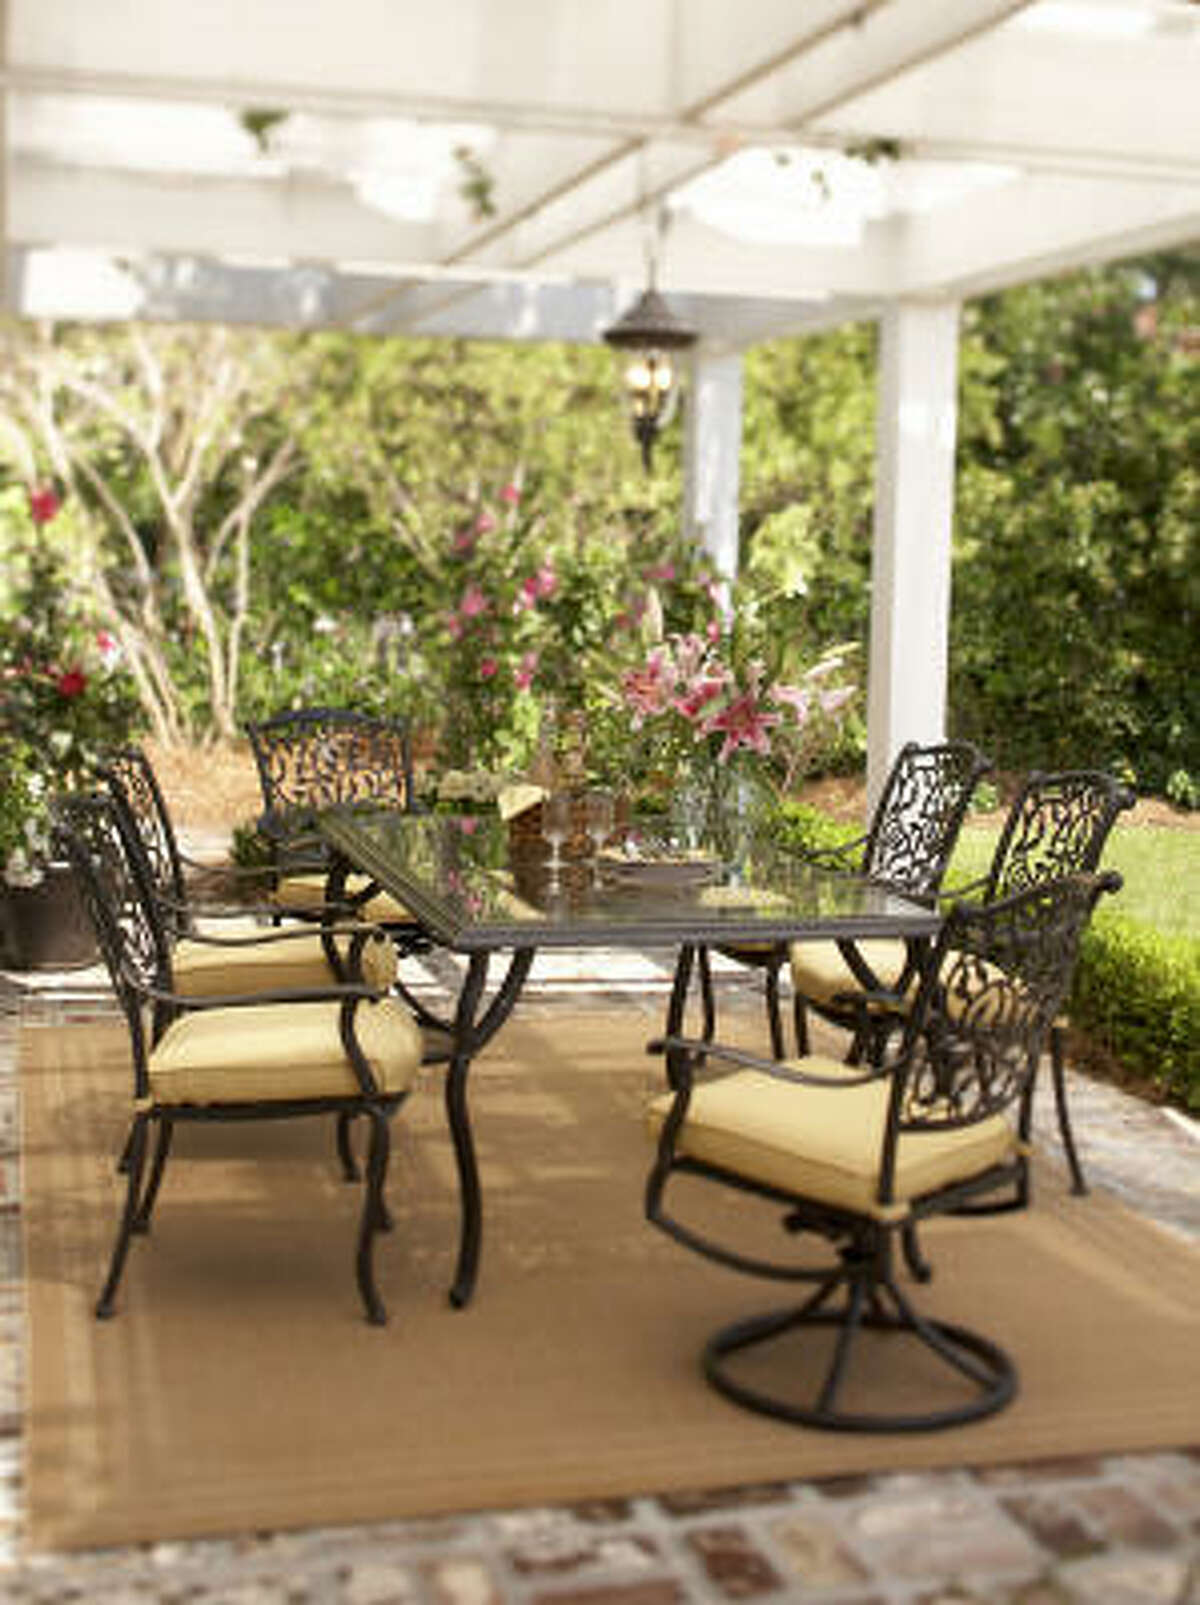 A great outdoor dining room sets the stage for summer entertaining, Megan Clark says. The Roslyn patio set can be ordered at Lowe's.